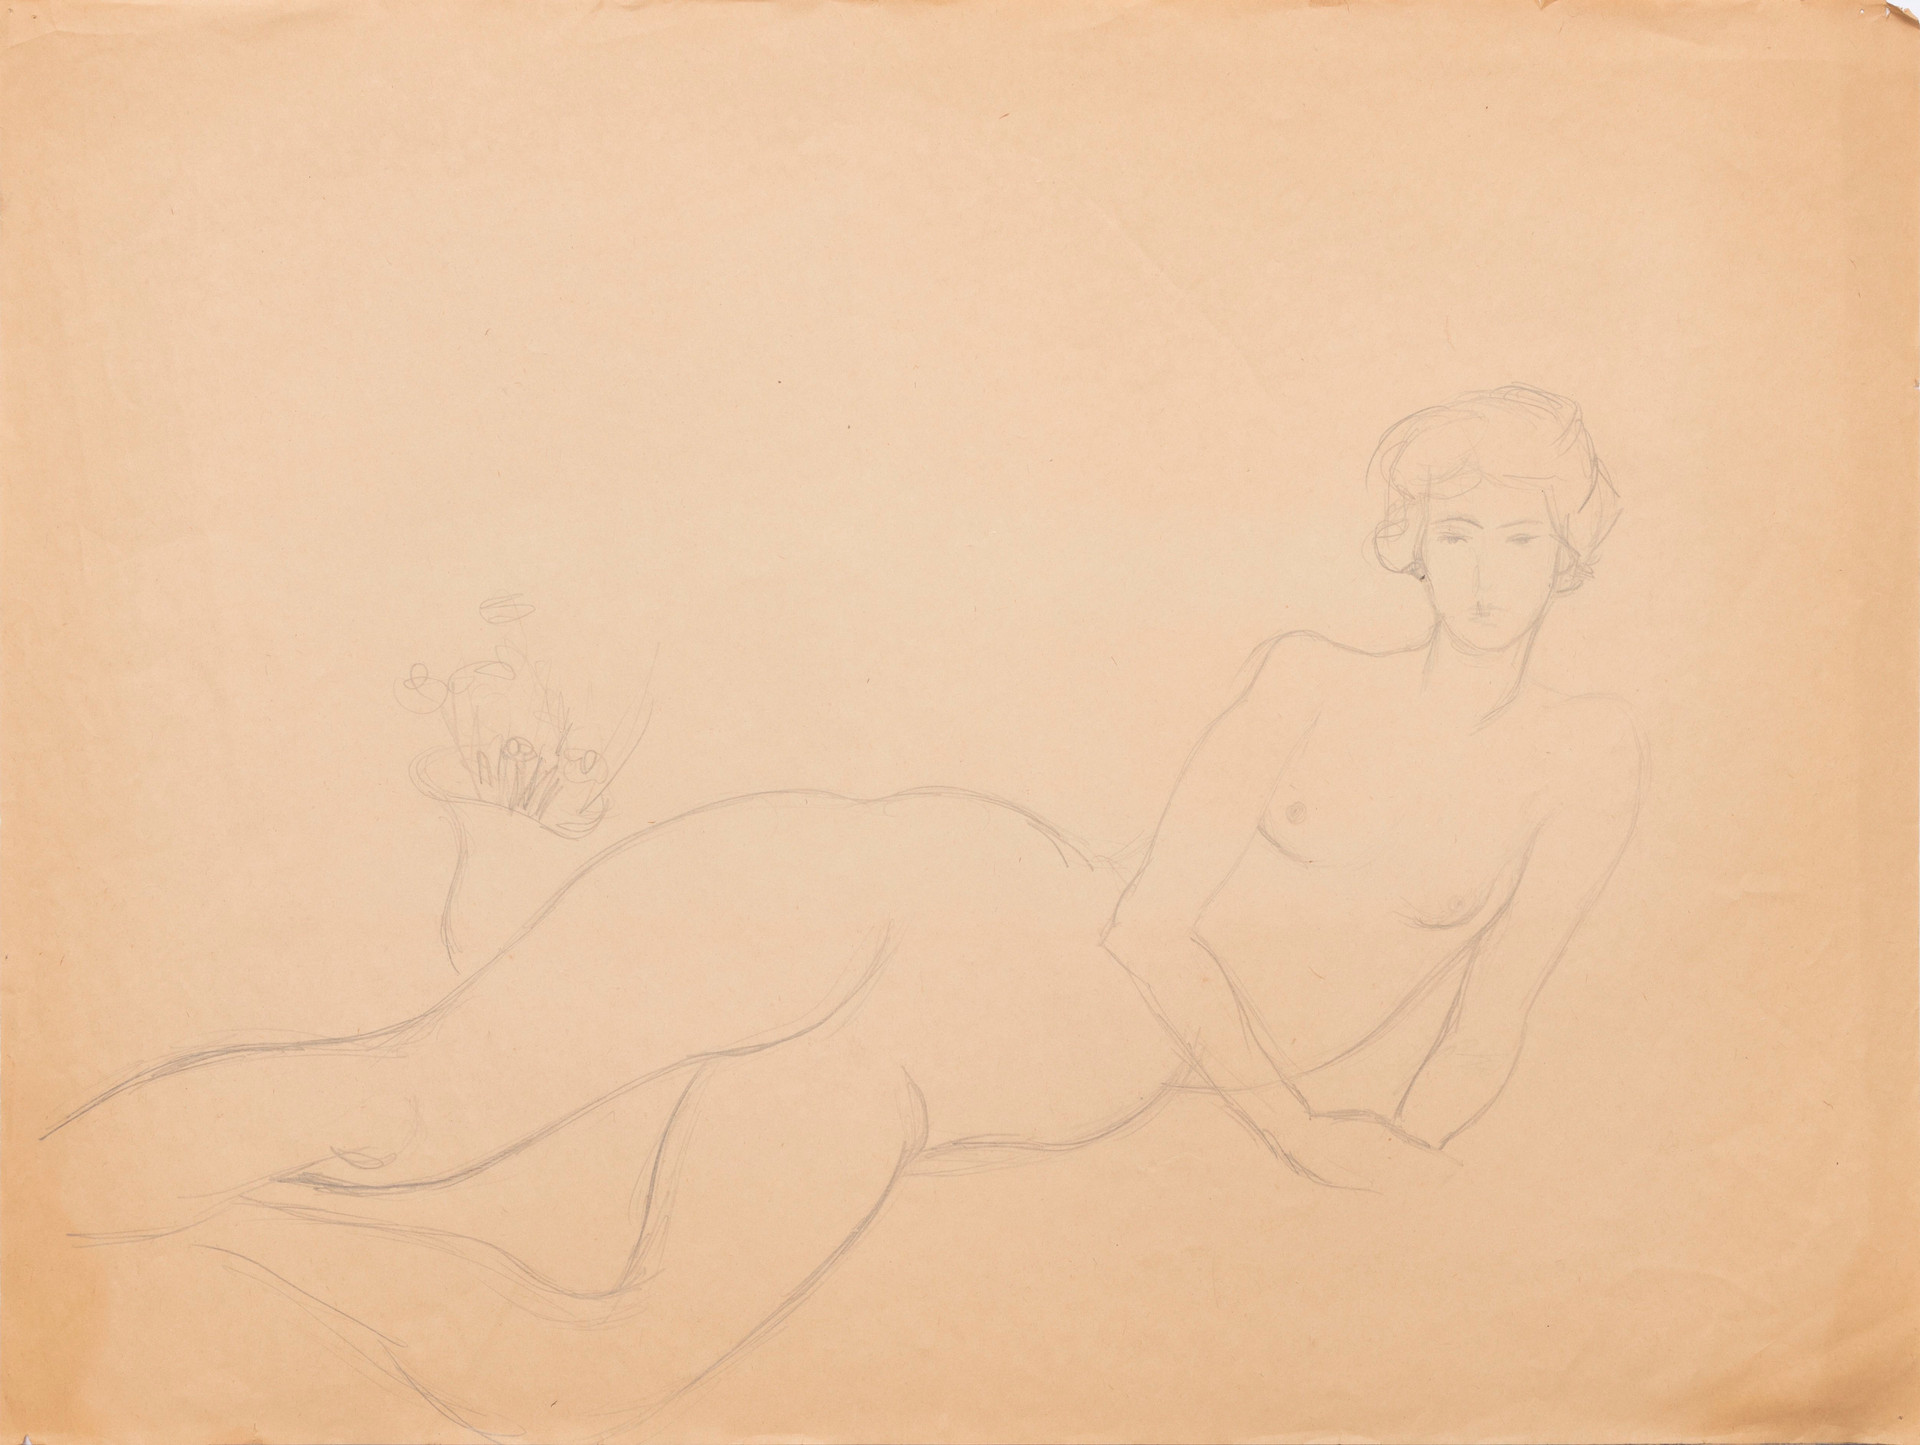 Untitled sketch - lying female nude with a vase of flowers